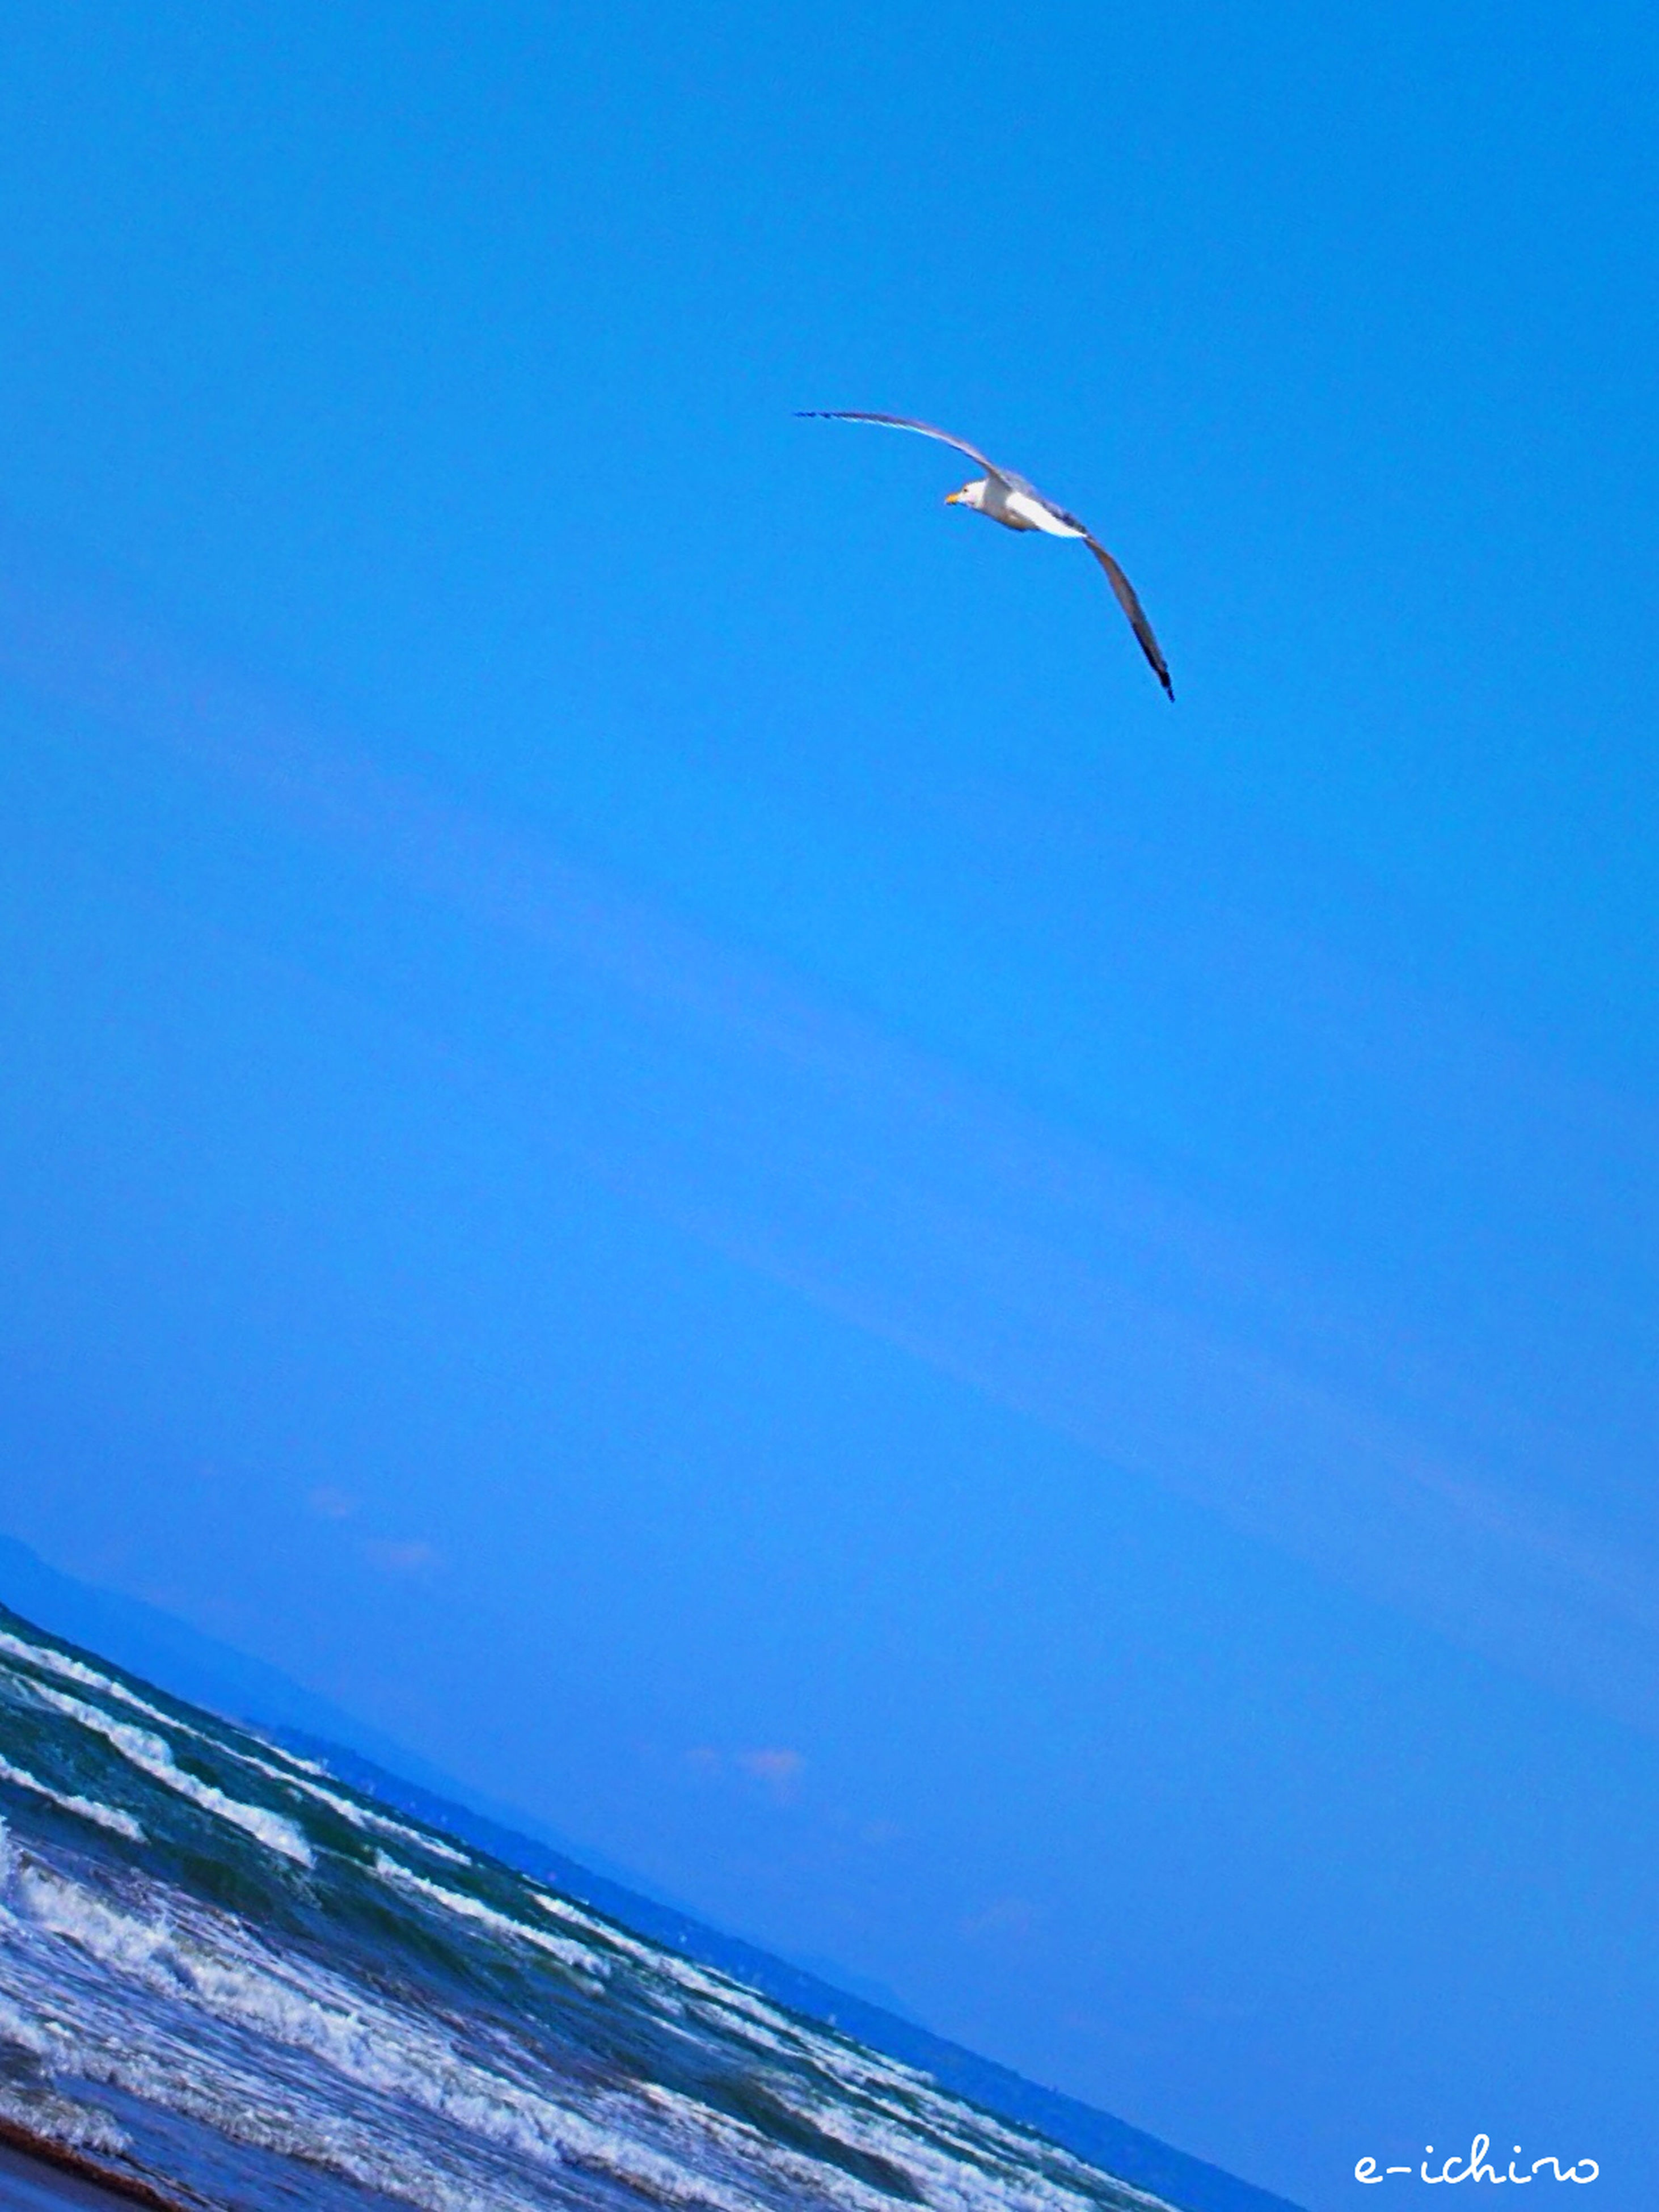 blue, flying, bird, clear sky, animal themes, animals in the wild, wildlife, one animal, copy space, low angle view, spread wings, mid-air, seagull, sea, nature, day, outdoors, no people, beauty in nature, full length